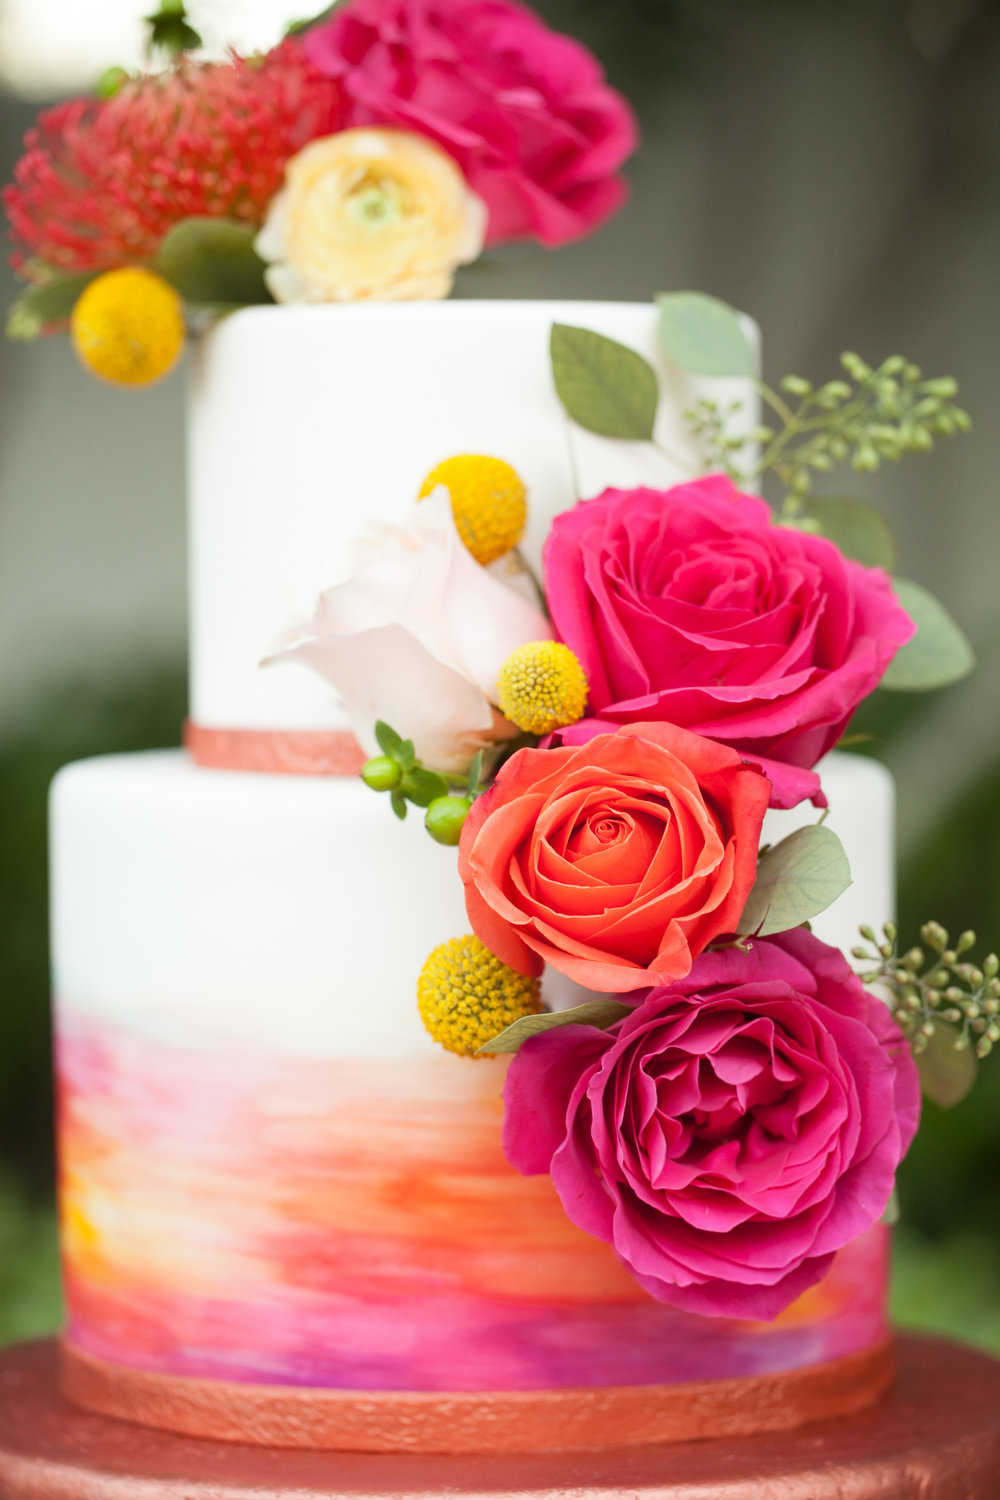 water color wedding cake copper wedding cake desert wedding el chorro wedding wedding planner heartsweet cakes